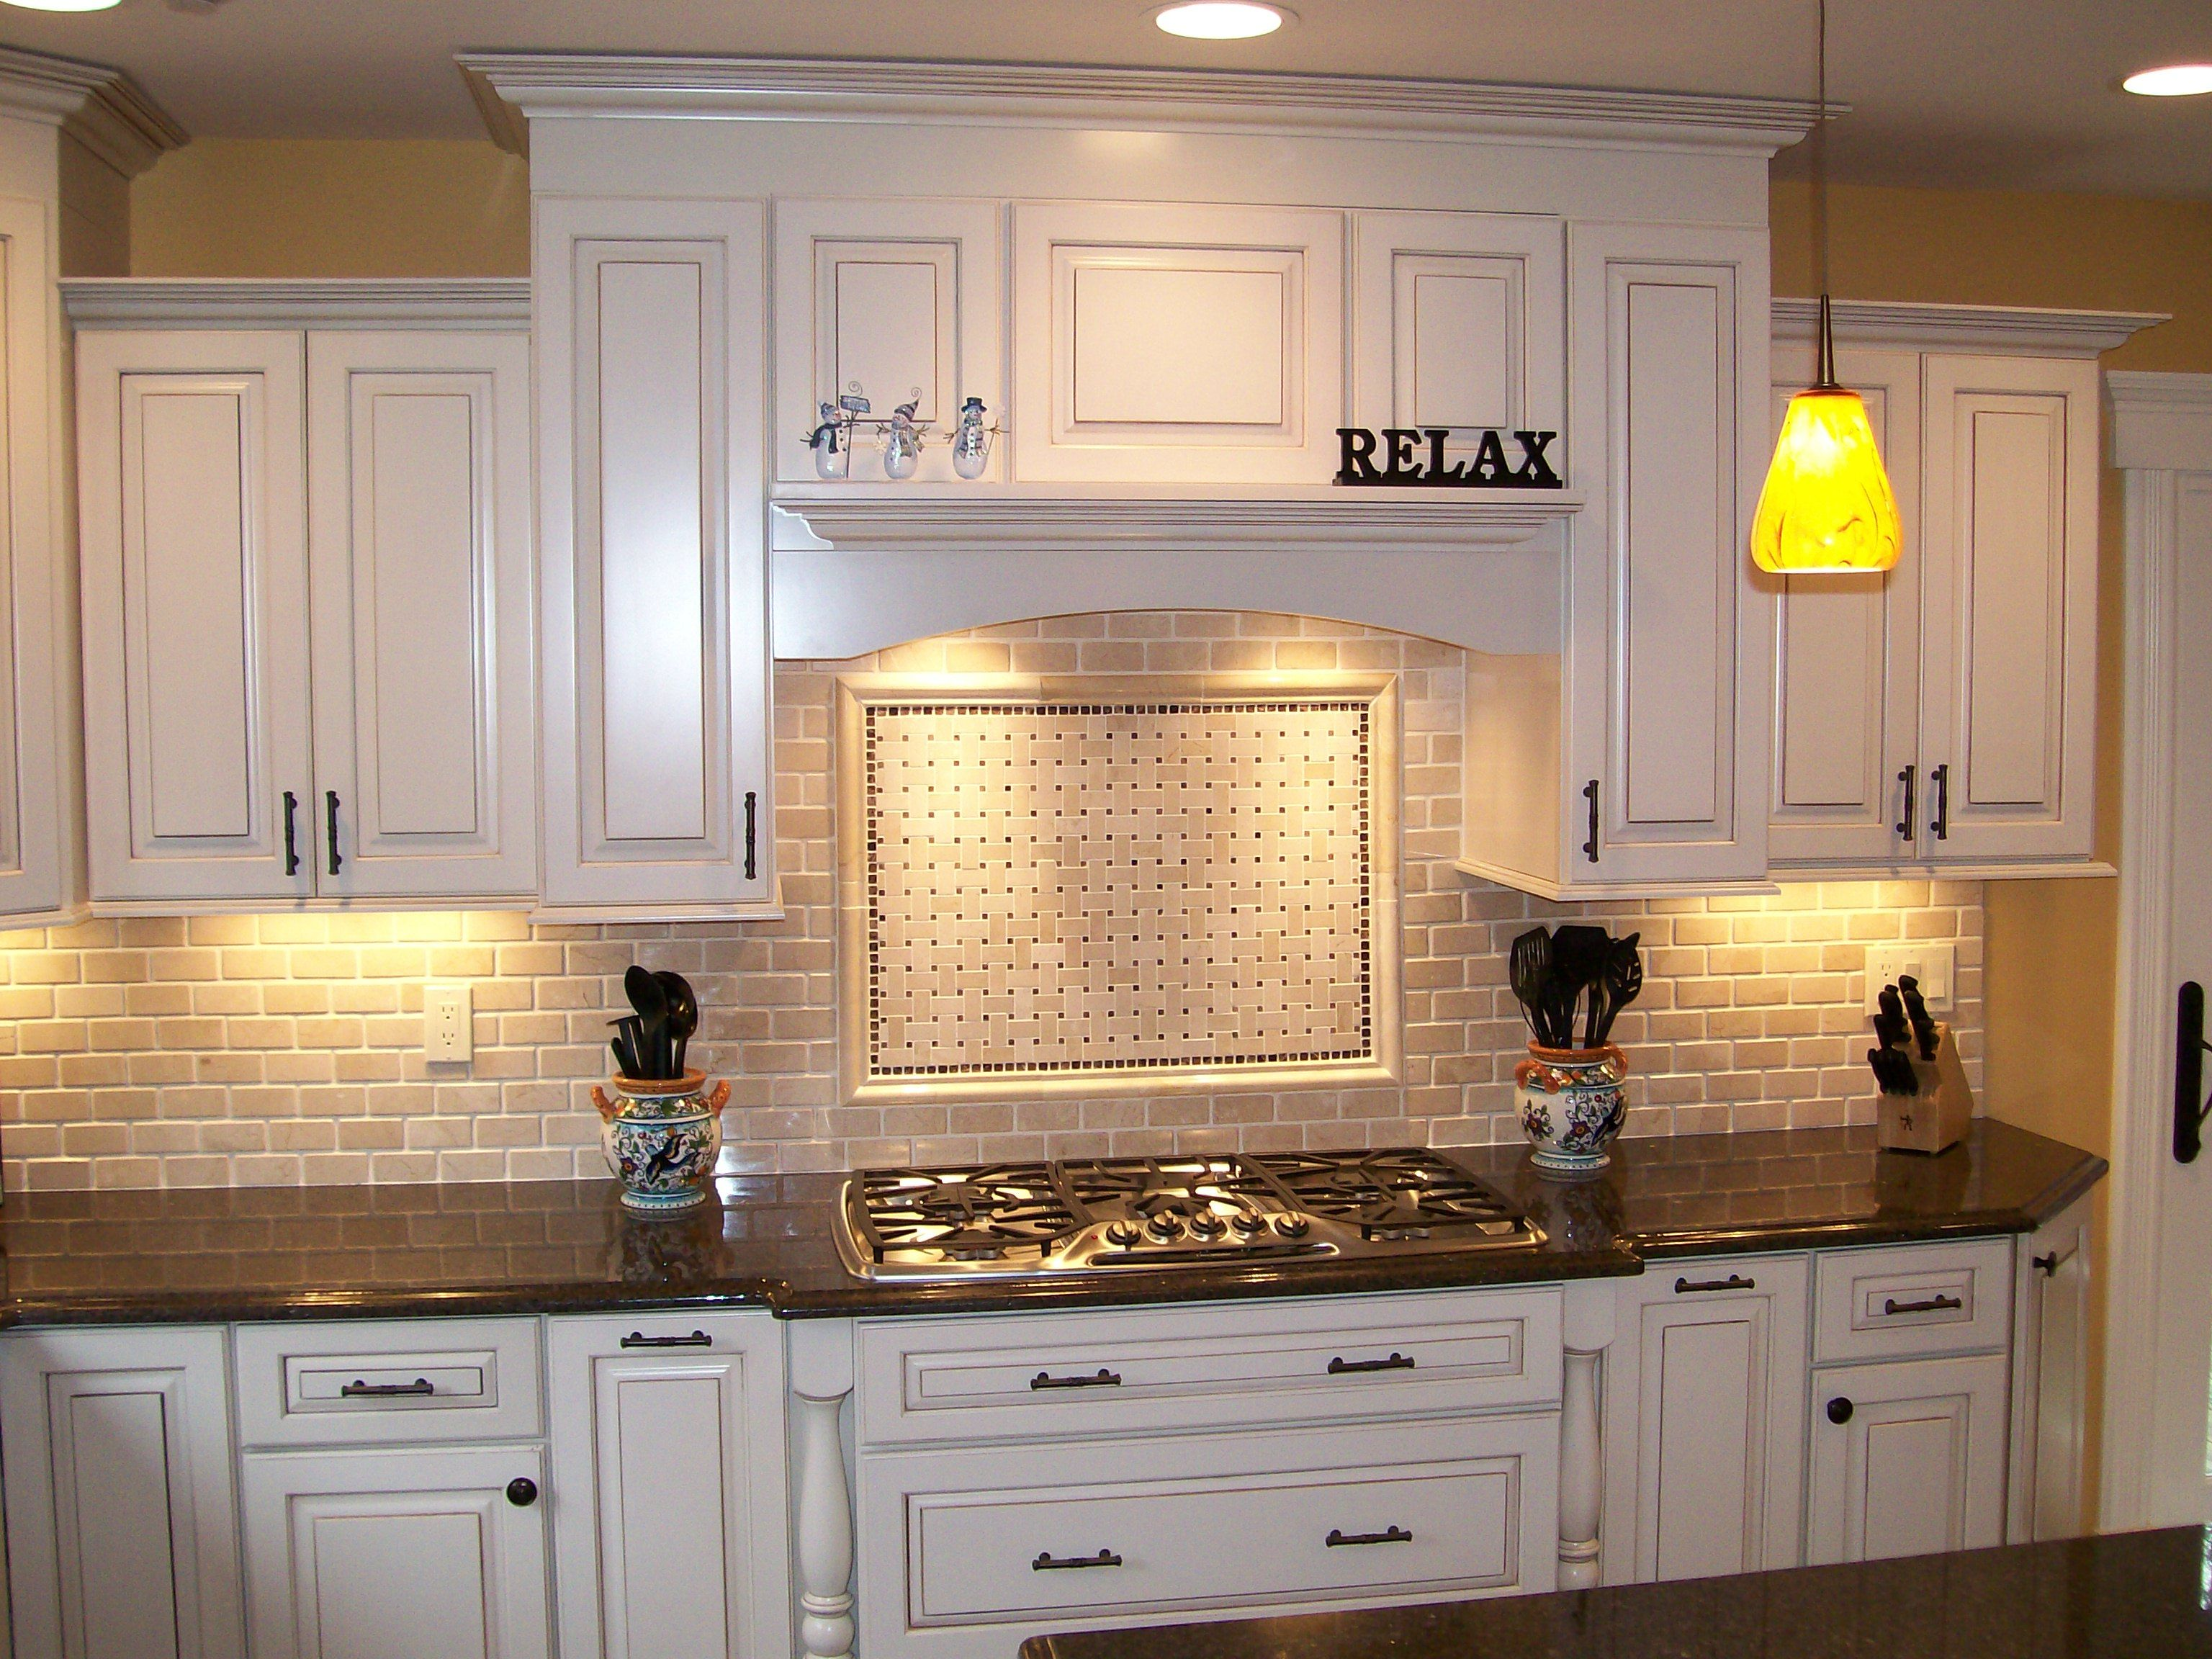 kitchen backsplash ideas white cabinets kitchens with white cabinets Kitchen Nice Brick Backsplash In With White Cabinet And